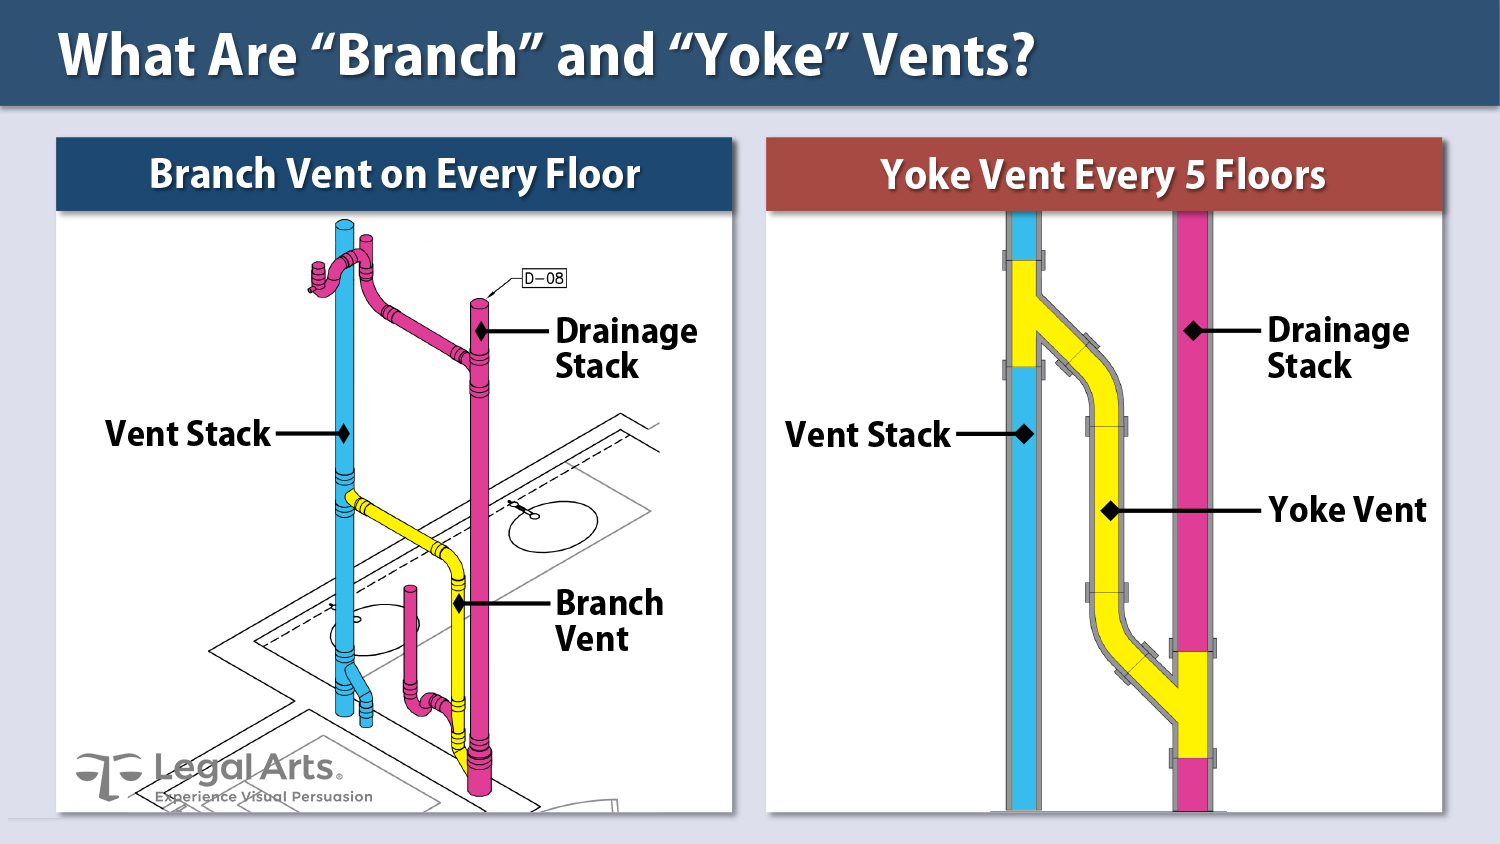 Defendant's branch vent design workaround to a conventional yoke vent demonstrates how performance and not a single design determines proper compliance the Code.